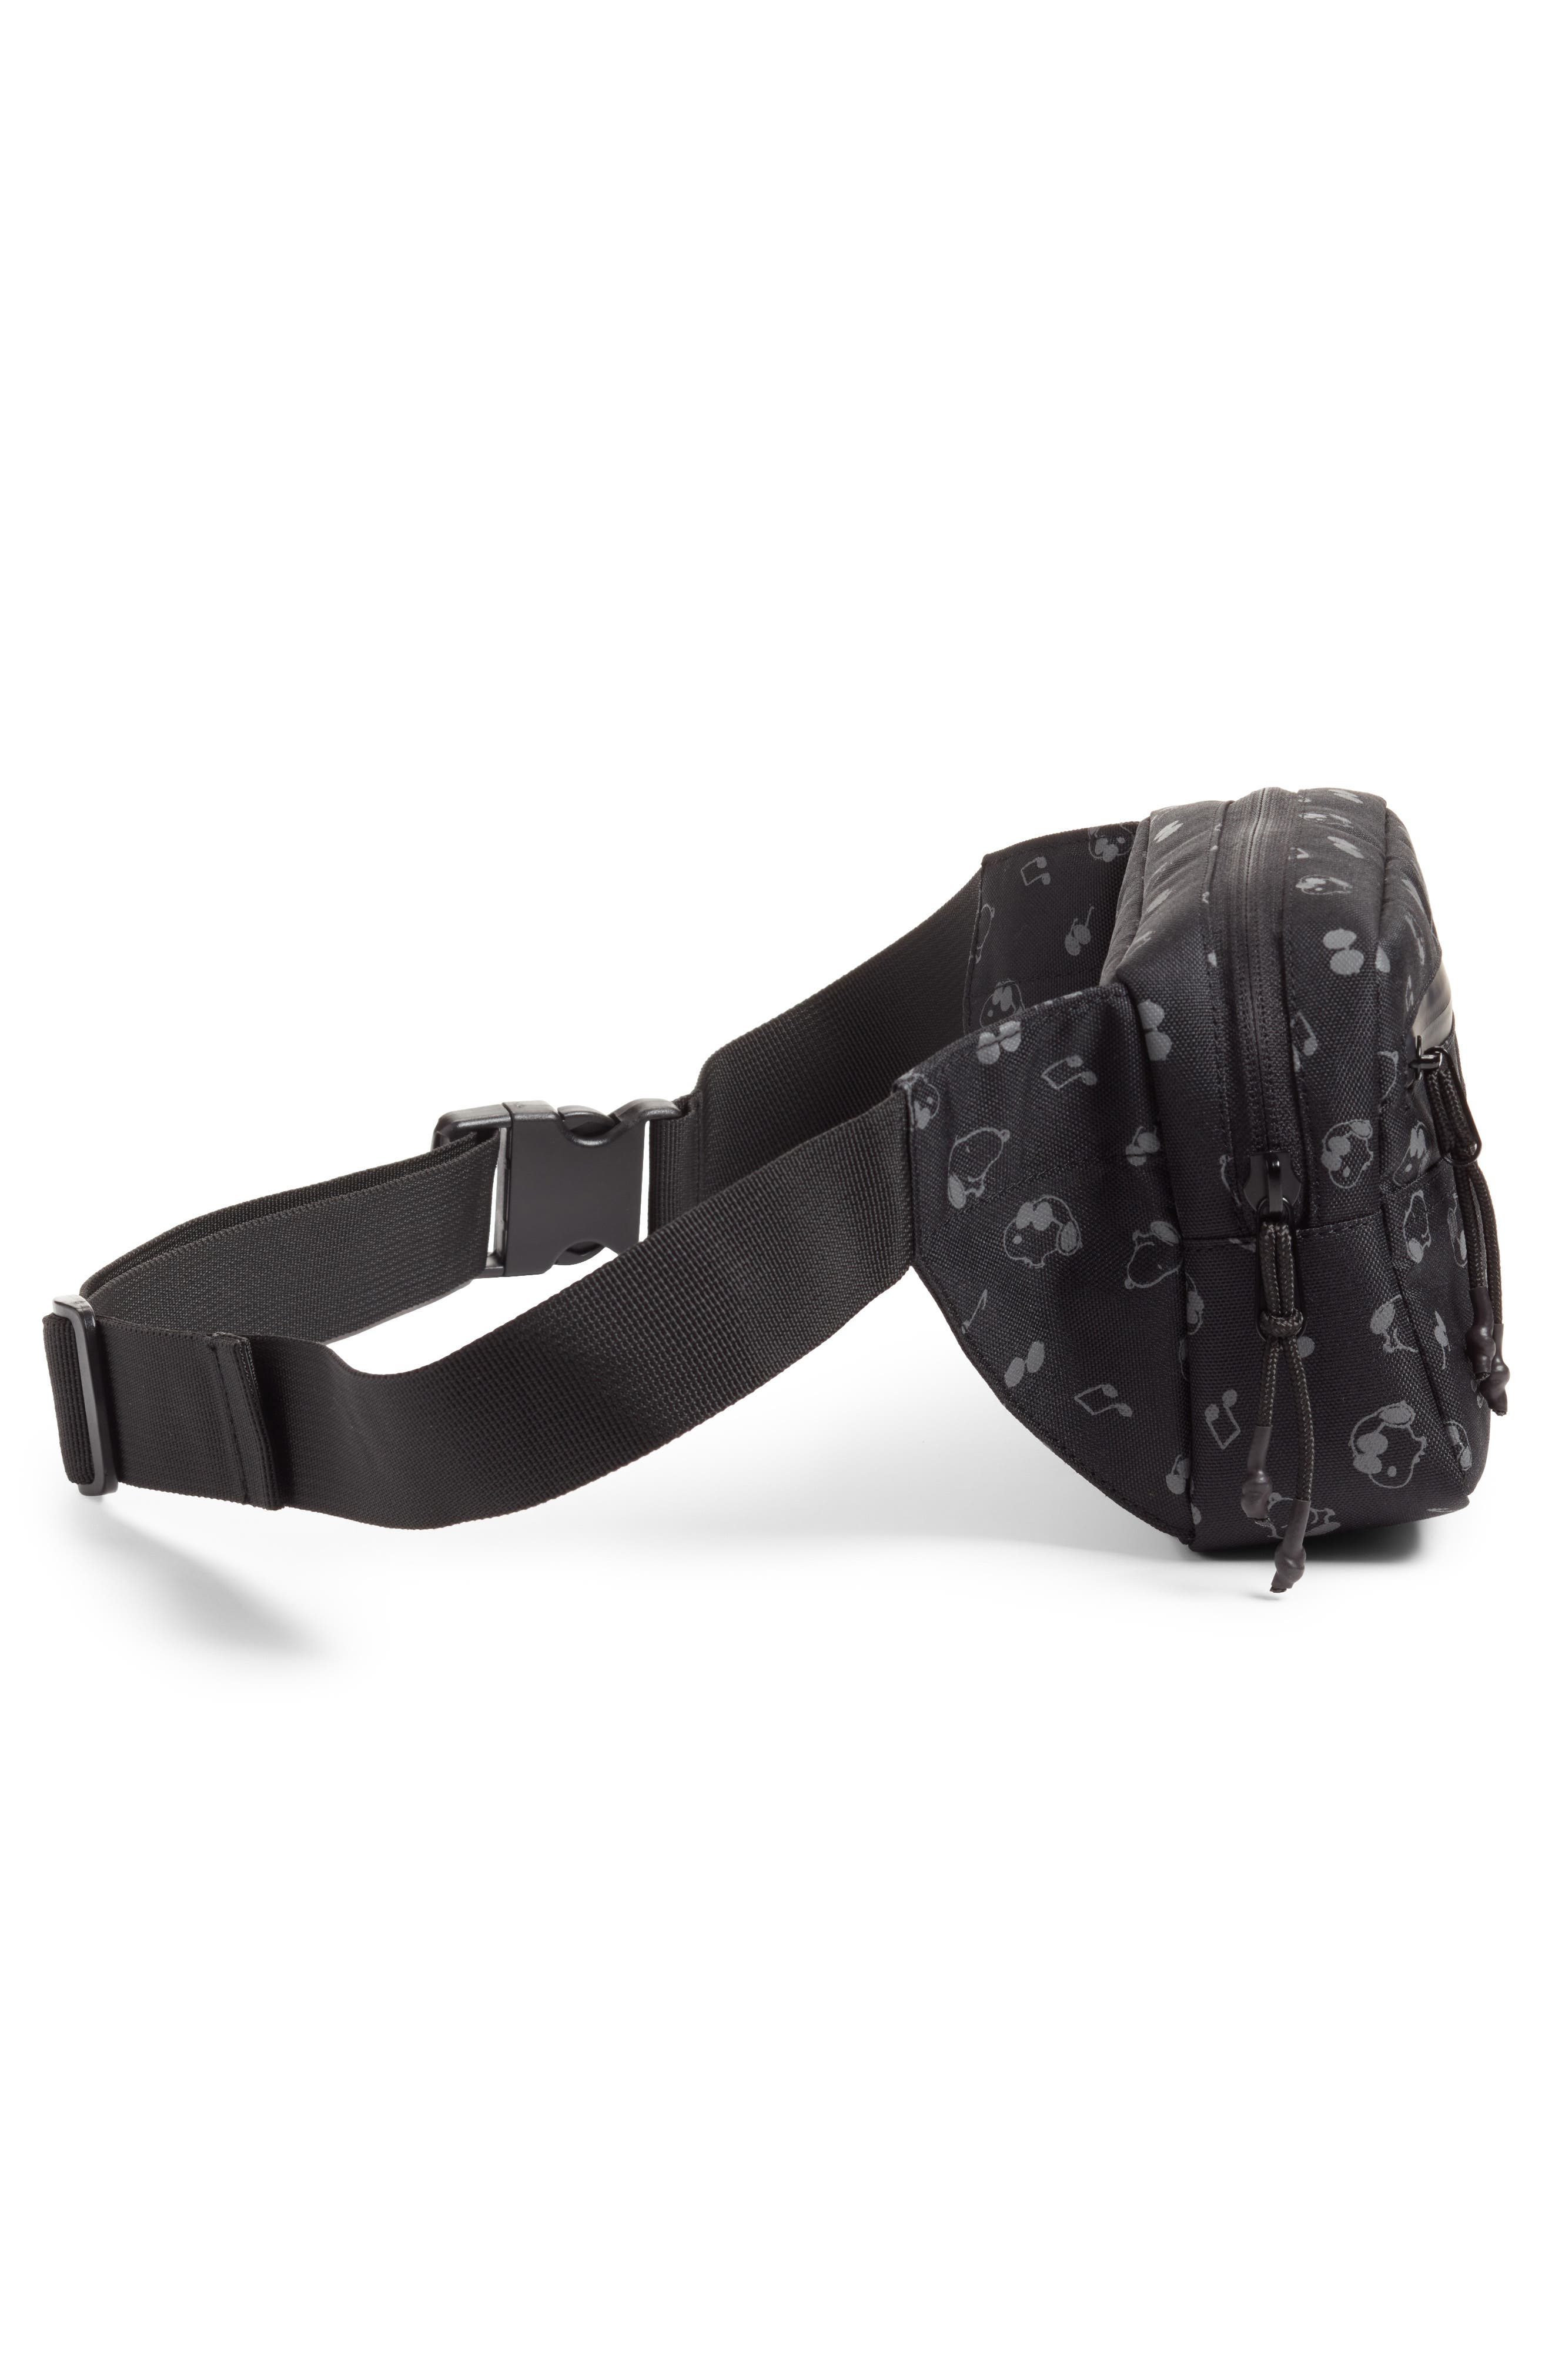 x Peanuts Water Resistant Waist Pack,                             Alternate thumbnail 4, color,                             001